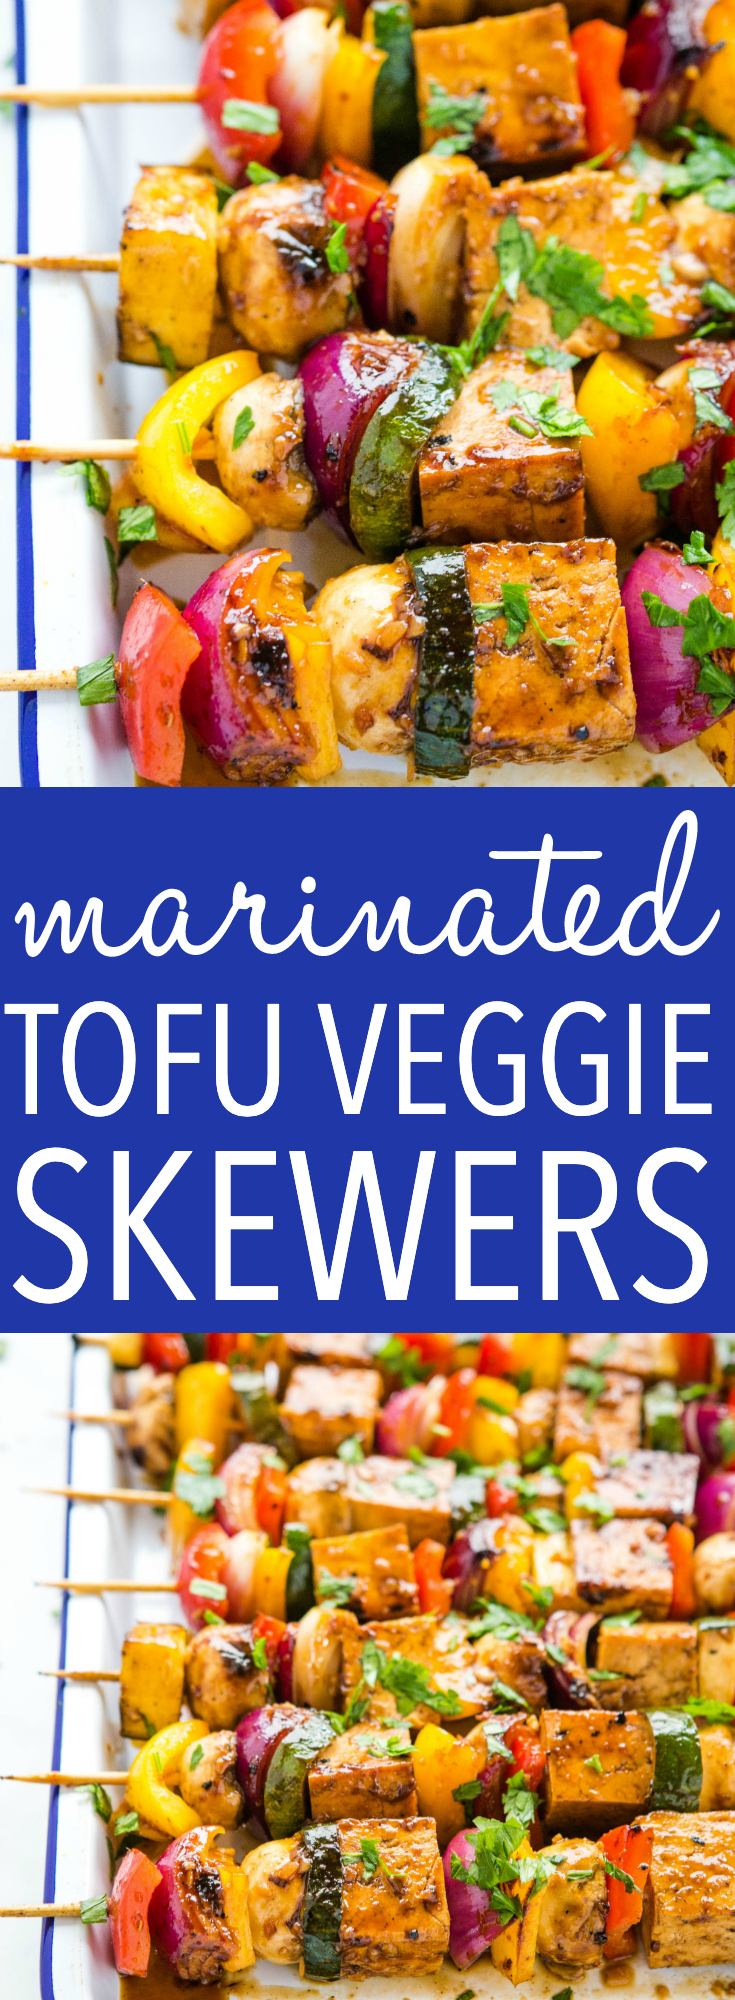 These Marinated Tofu Veggie Skewers are the perfect vegan main dish for summer! Tofu in a simple savoury marinade with fresh veggies - a healthy choice for summer entertaining!  Recipe from thebusybaker.ca! #tofu #vegan #veggies #maindish #grilling #vegangrilling #summer #healthy via @busybakerblog